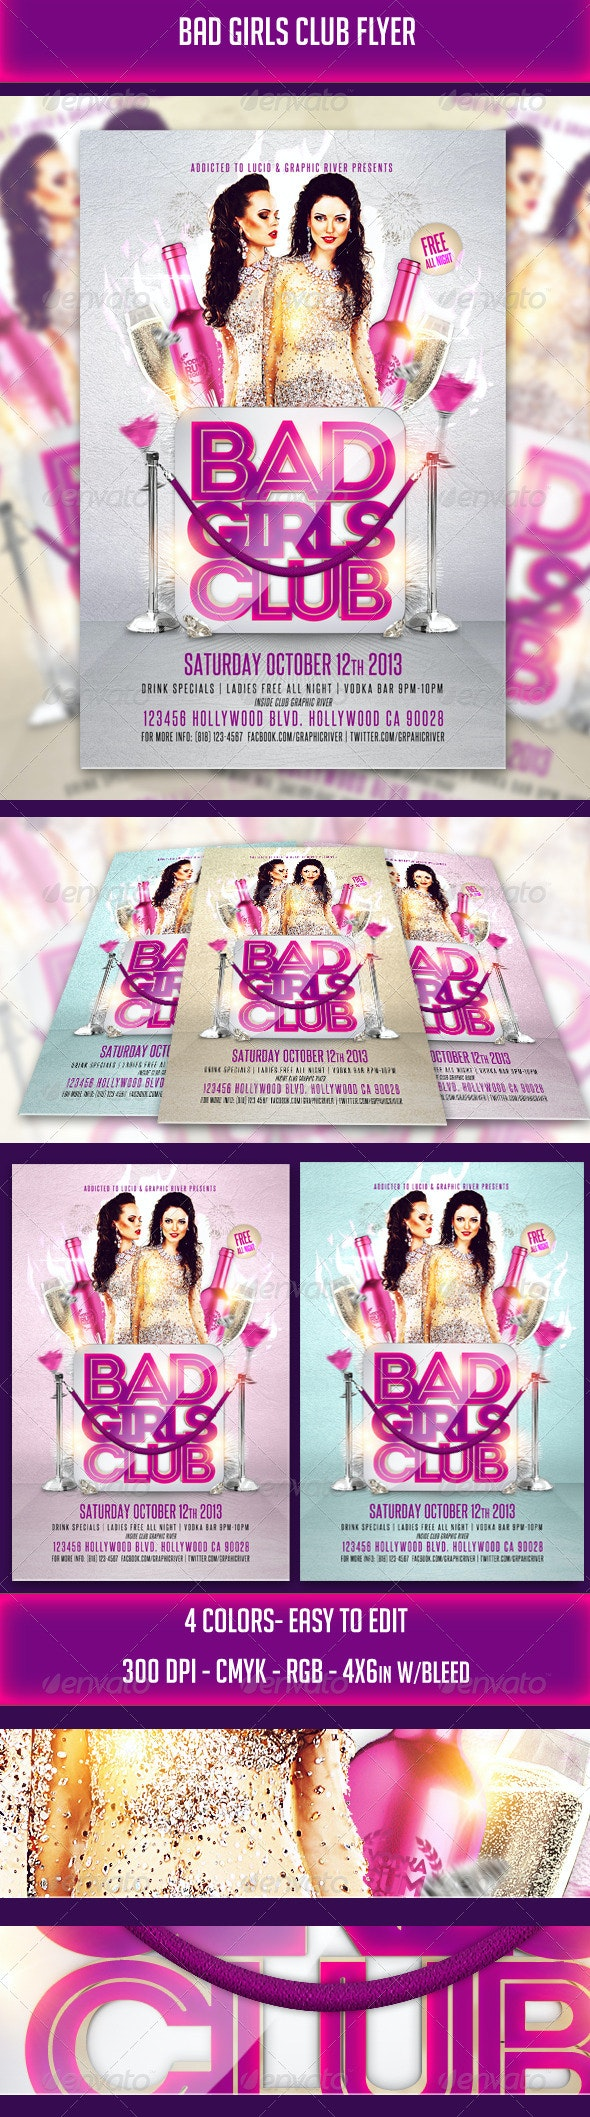 Bad Girls Club Flyer - Clubs & Parties Events